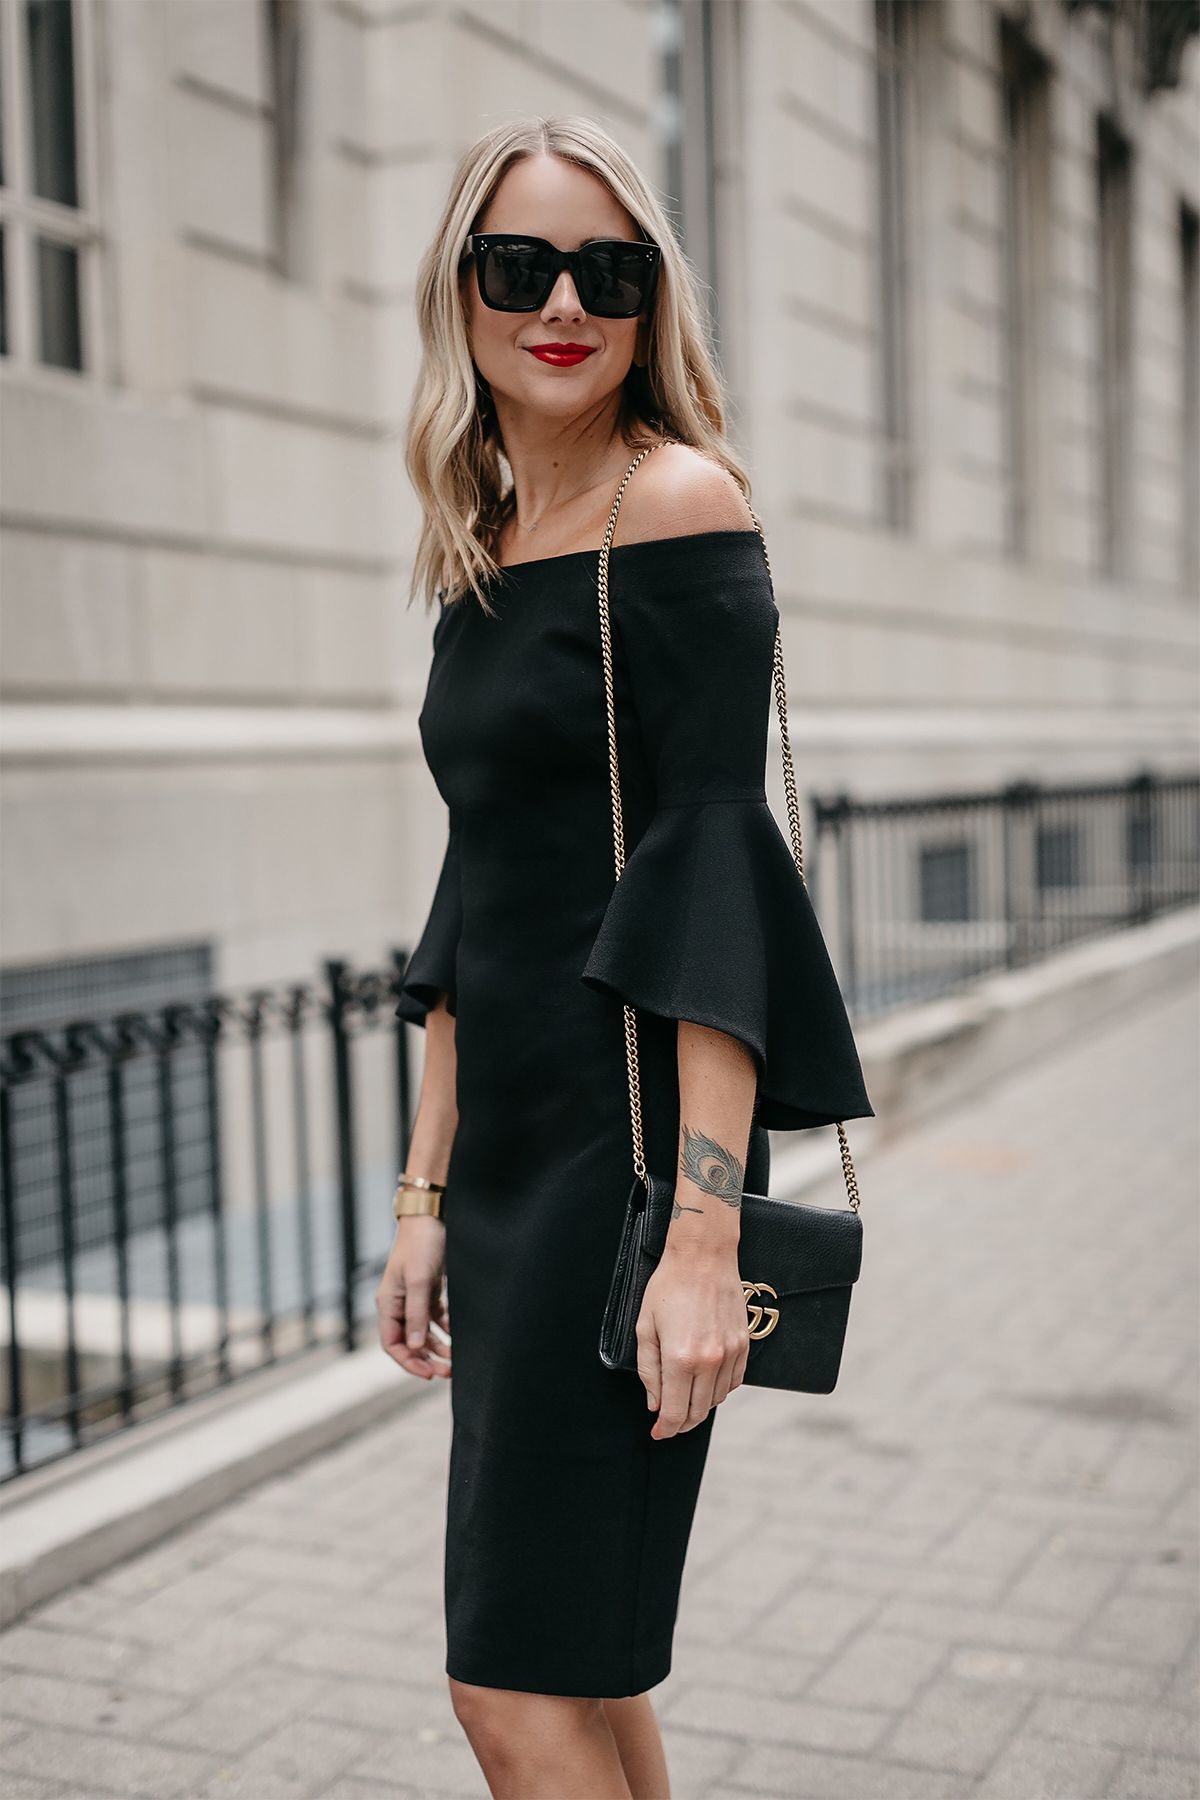 Blonde Woman Wearing Off-the-Shoulder Black Holiday Dress Gucci Marmont Handbag Fashion Jackson Dallas Blogger Fashion Blogger Street Style